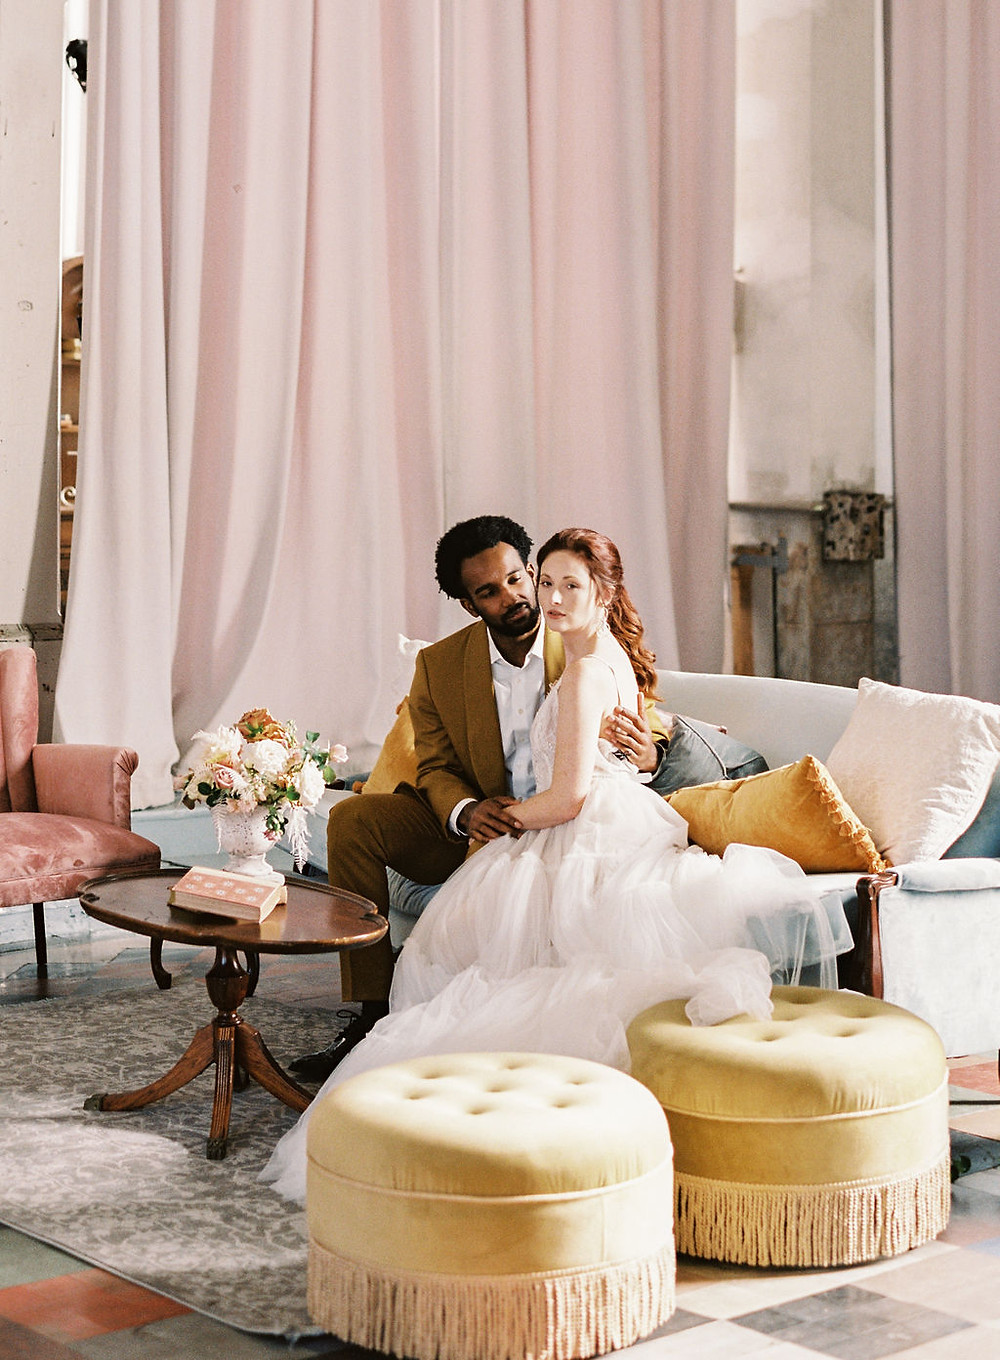 Bride and Groom on Lounge Space and Seating for Bridgerton Inspired Wedding at the Marigny Opera House in New Orleans with Decor and Vintage Furniture by Lovegood Rentals